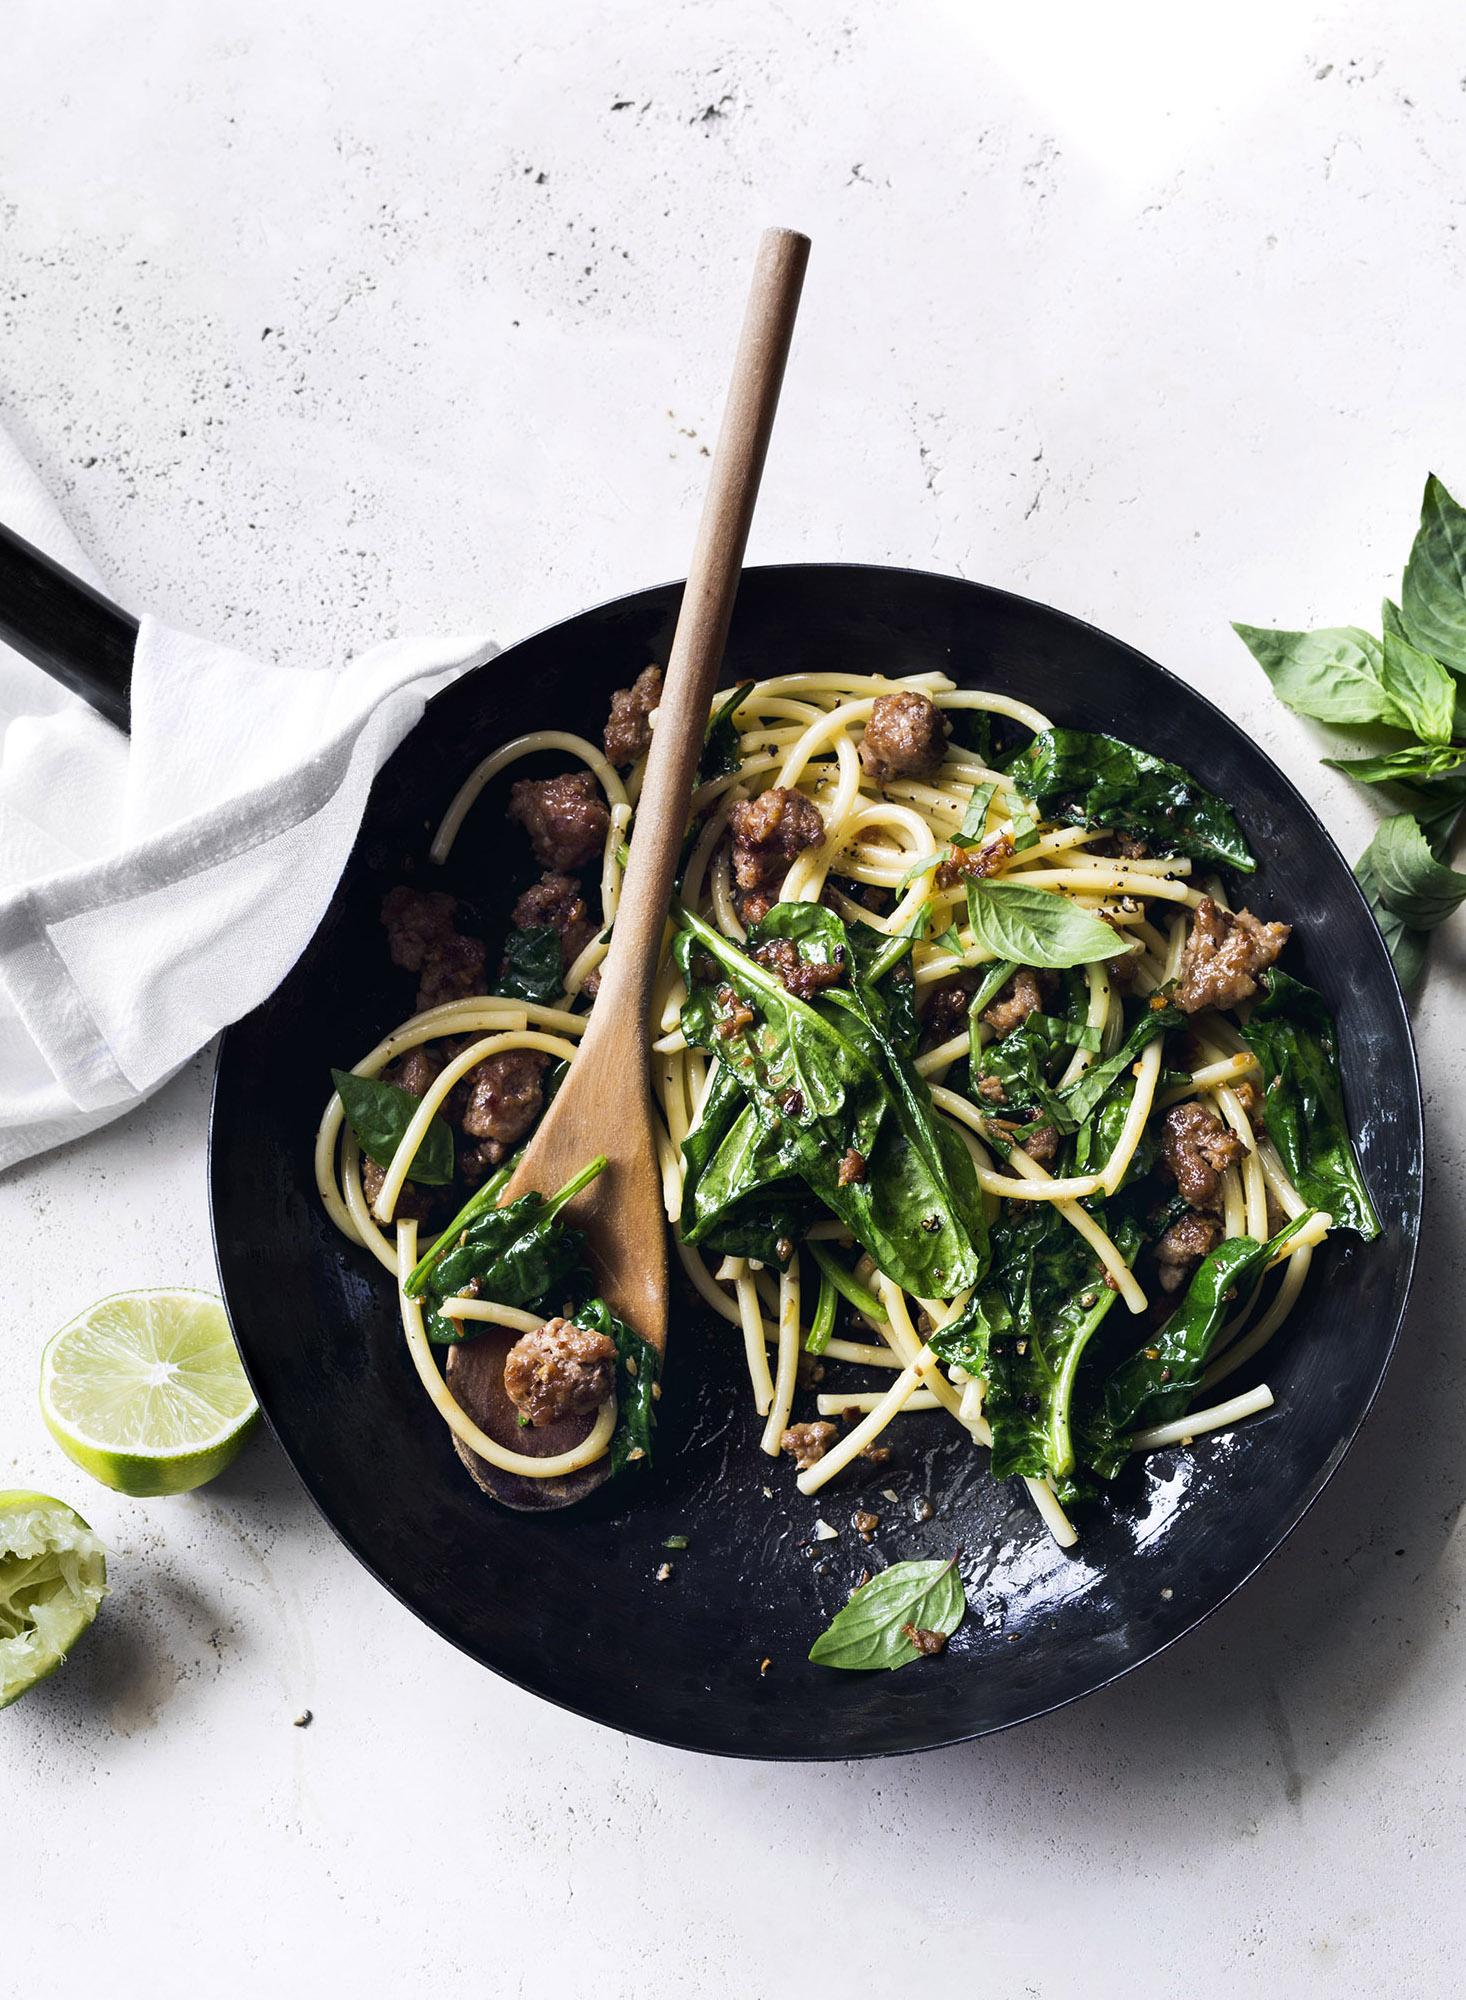 Spinach_SpaghettiStirFry-073_V1_final.jpg